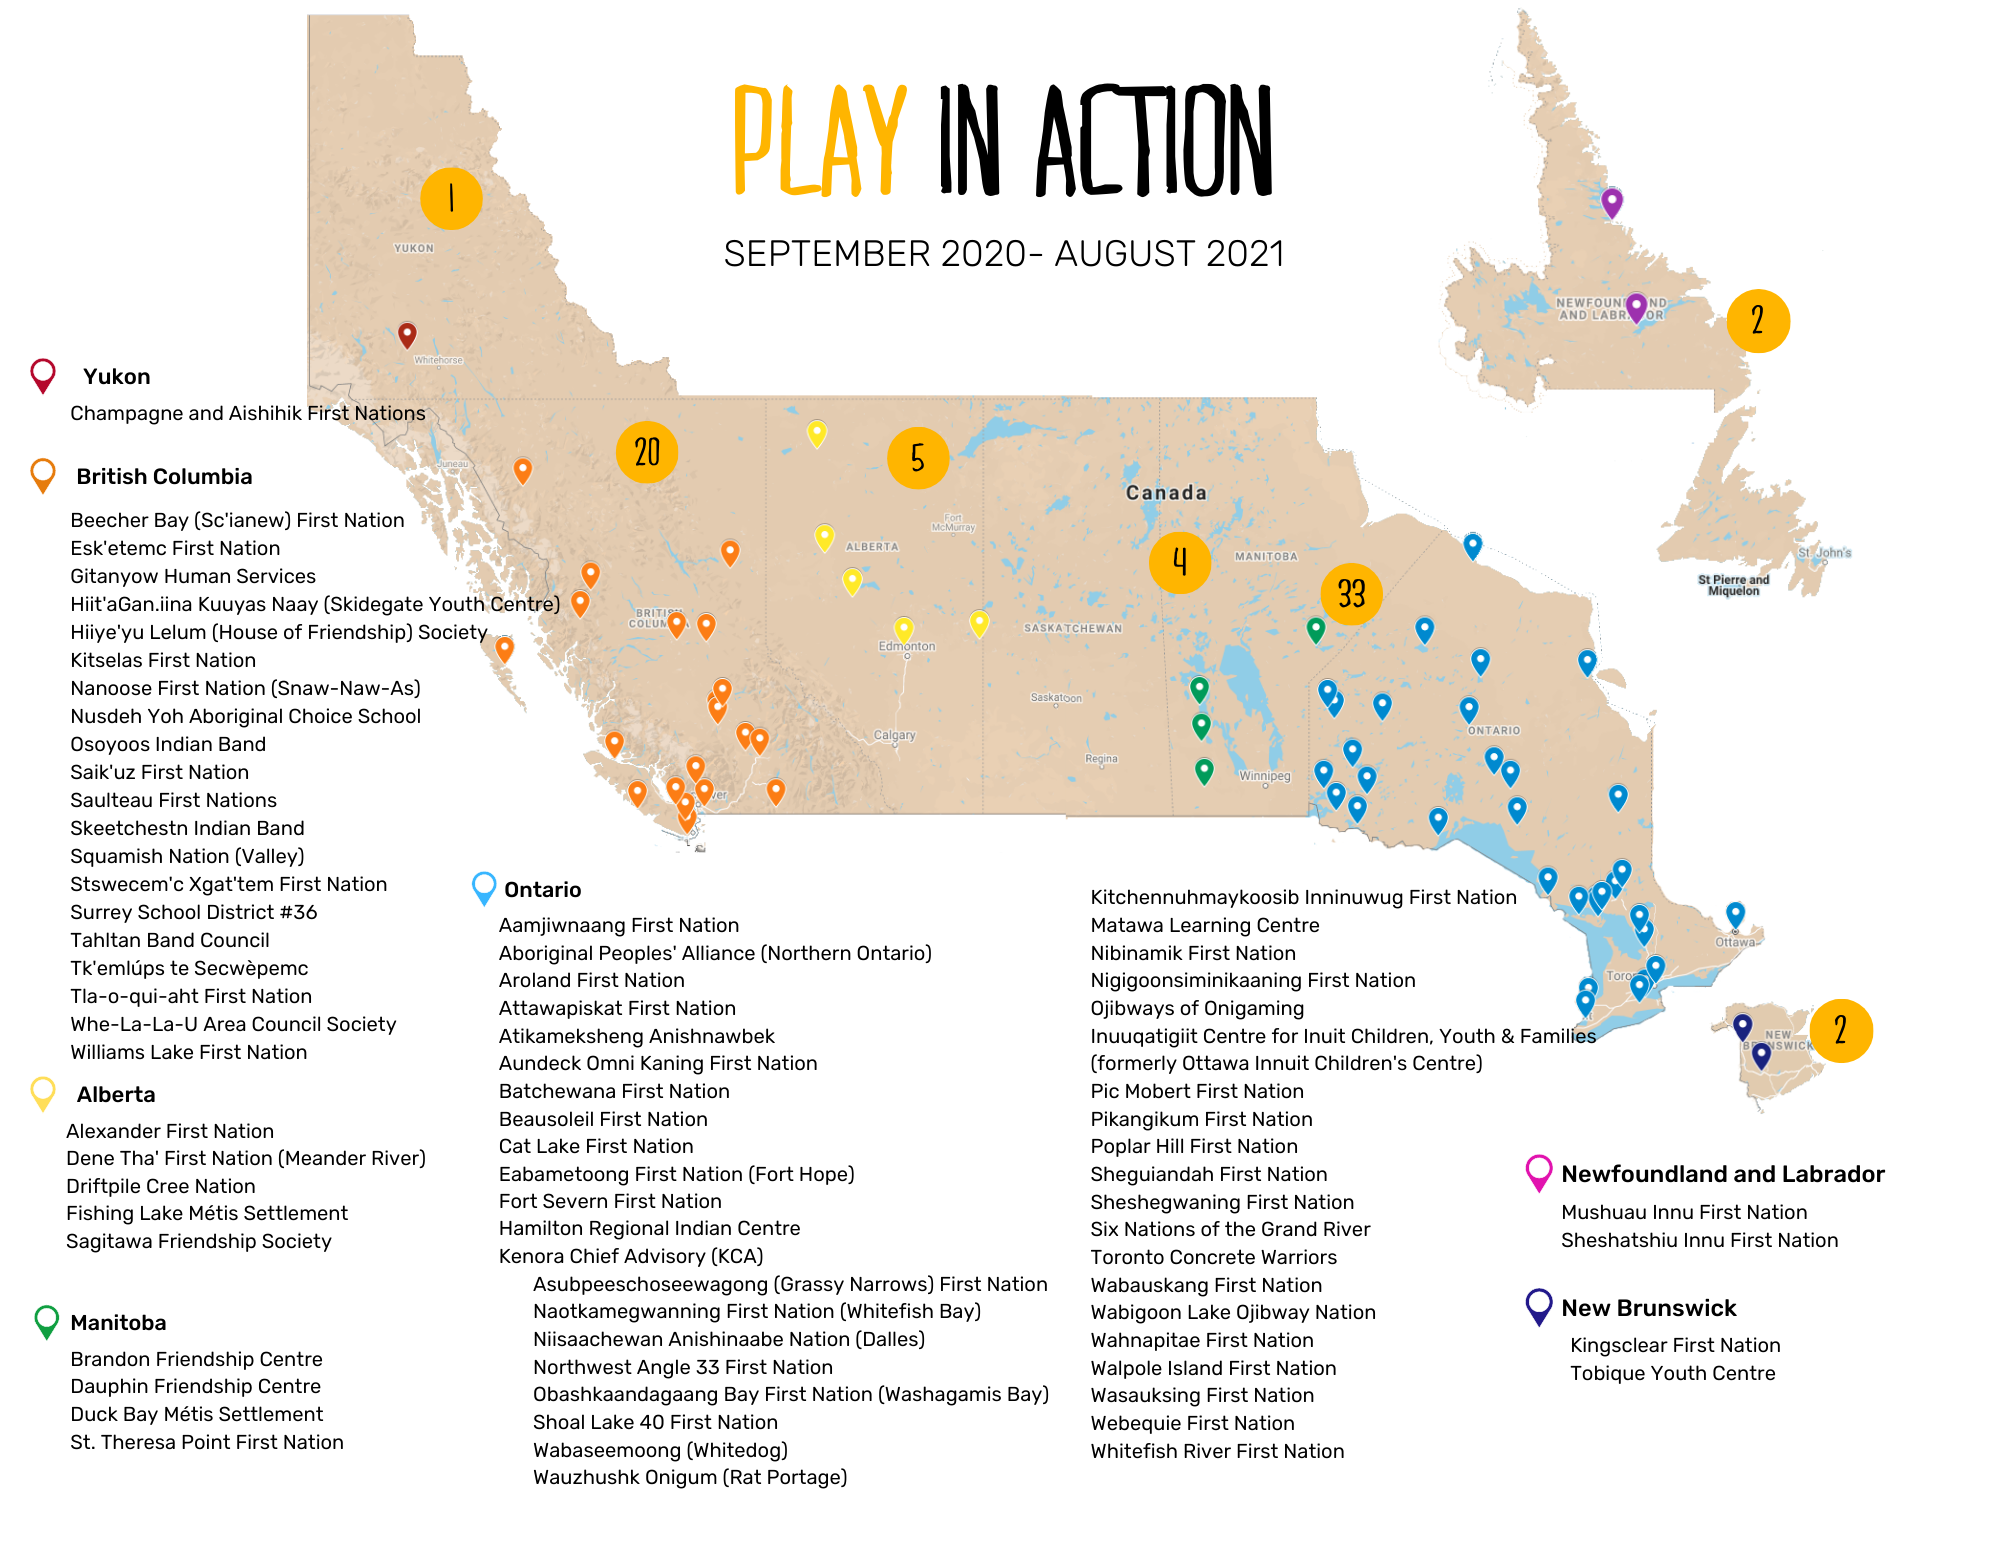 PLAY National Map 2020-21